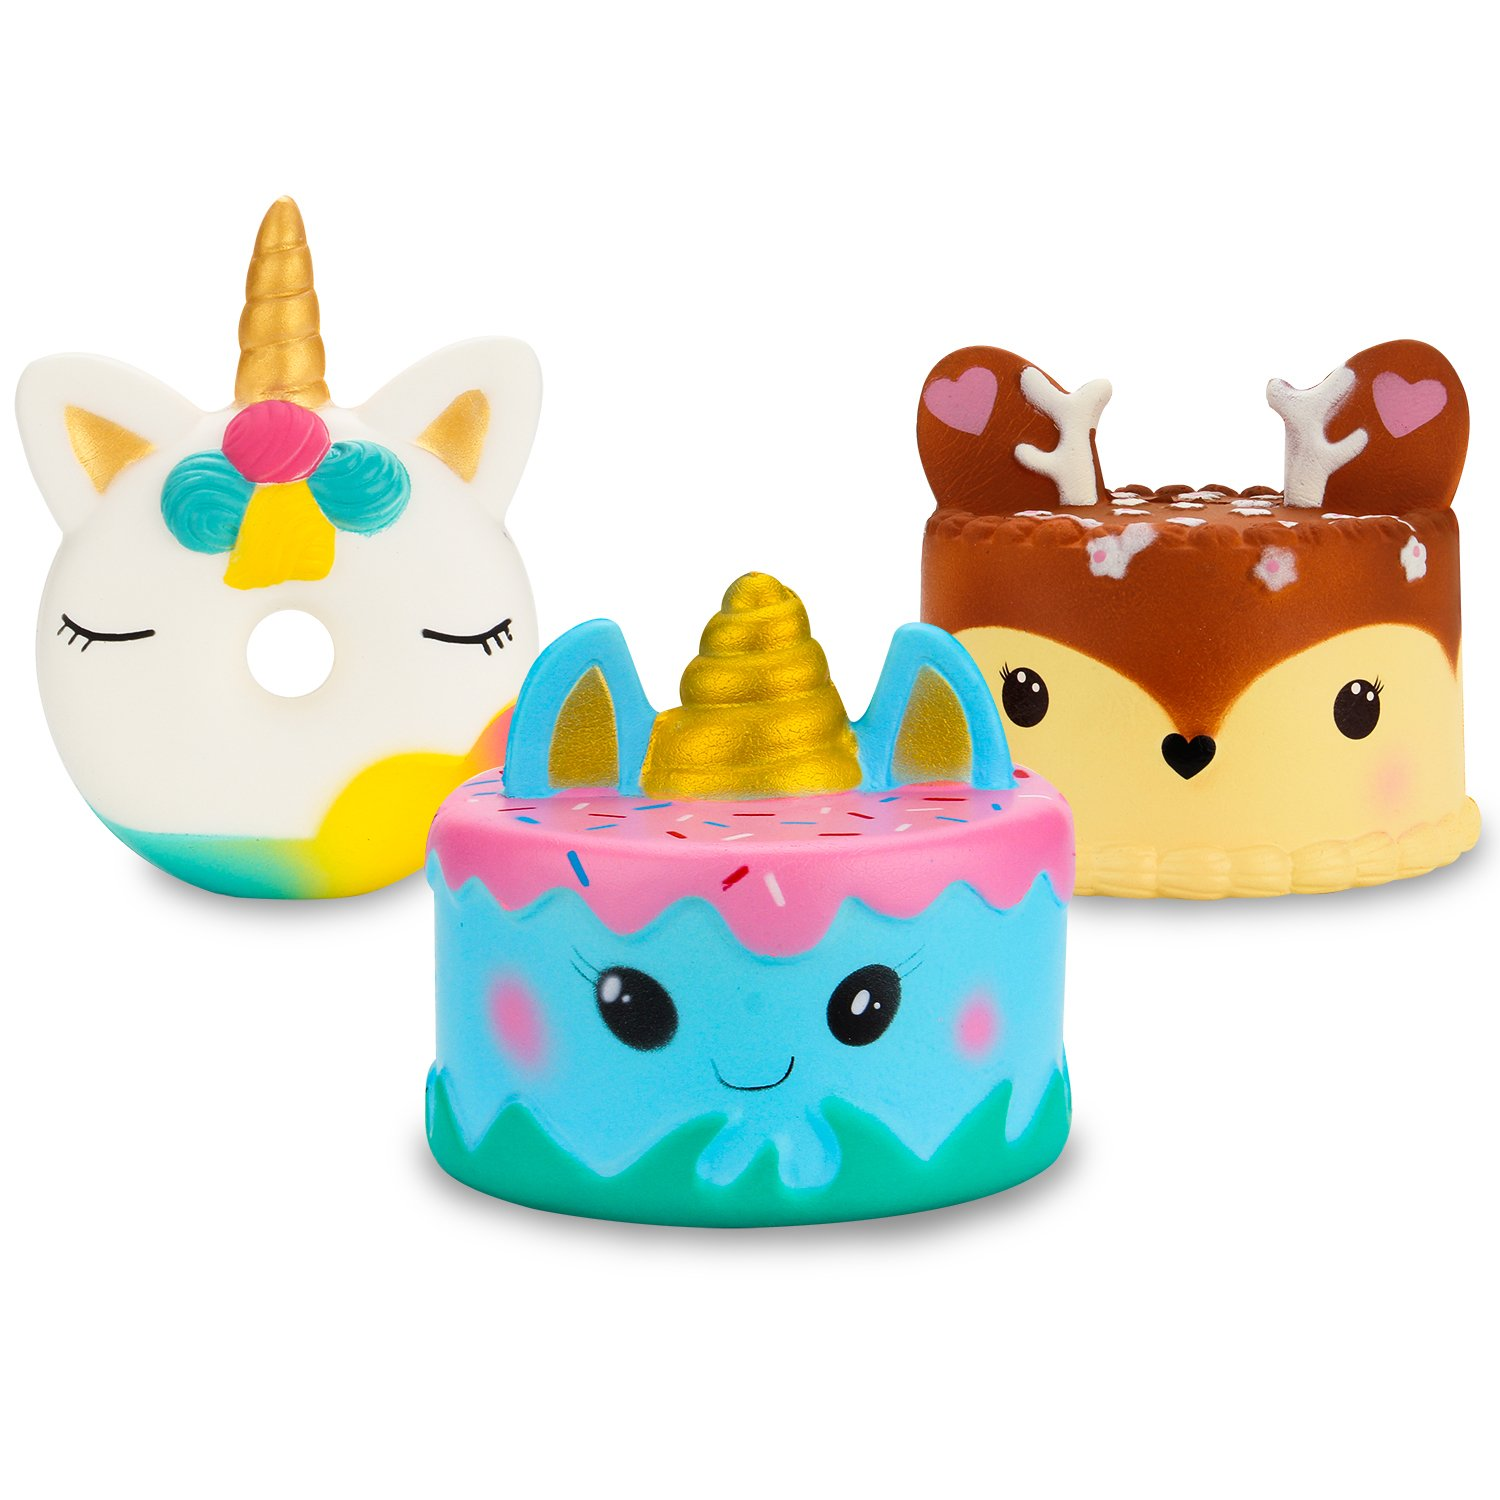 WATINC 3 PCs Animal Squishy Sweet Scented Cute Unicorn Donut Cake Deer Cake Slow Rising Squishy Kid Toy, Lovely Toy,Stress Relief Toy,Decorations Toy Gift Cake Set 3pcs